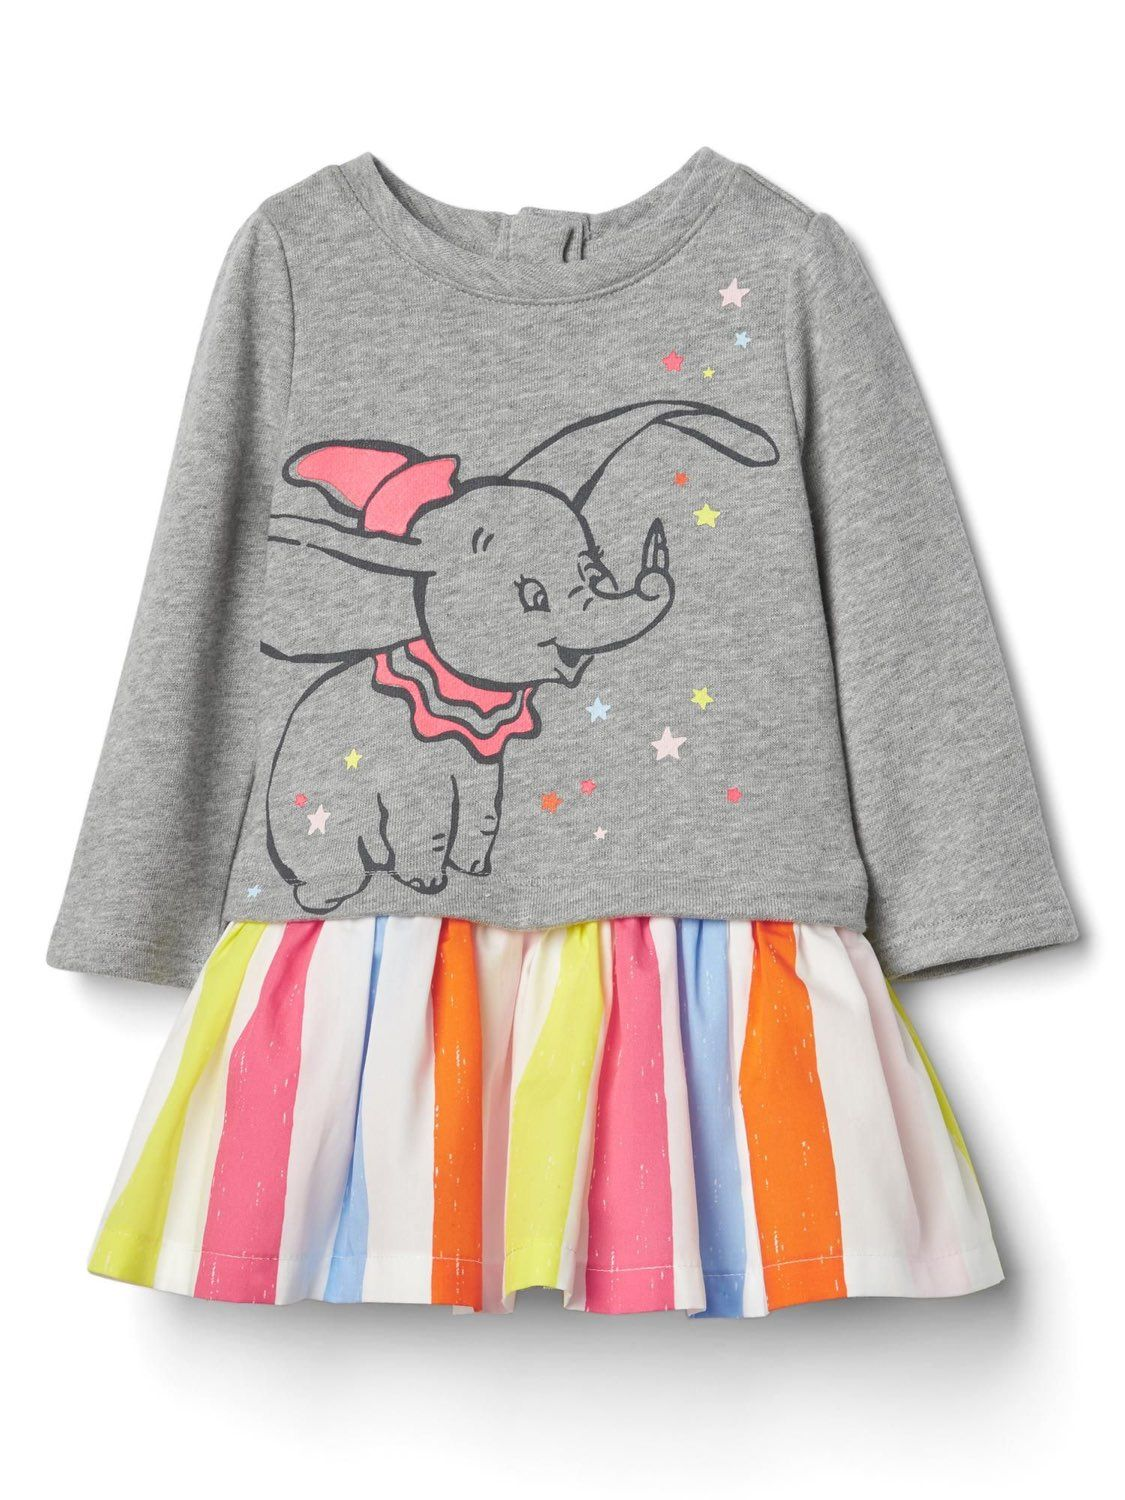 04538382c702 Baby Gap Disney Dumbo Grey Multi-Color Tutu Dress 12-18 Months ...